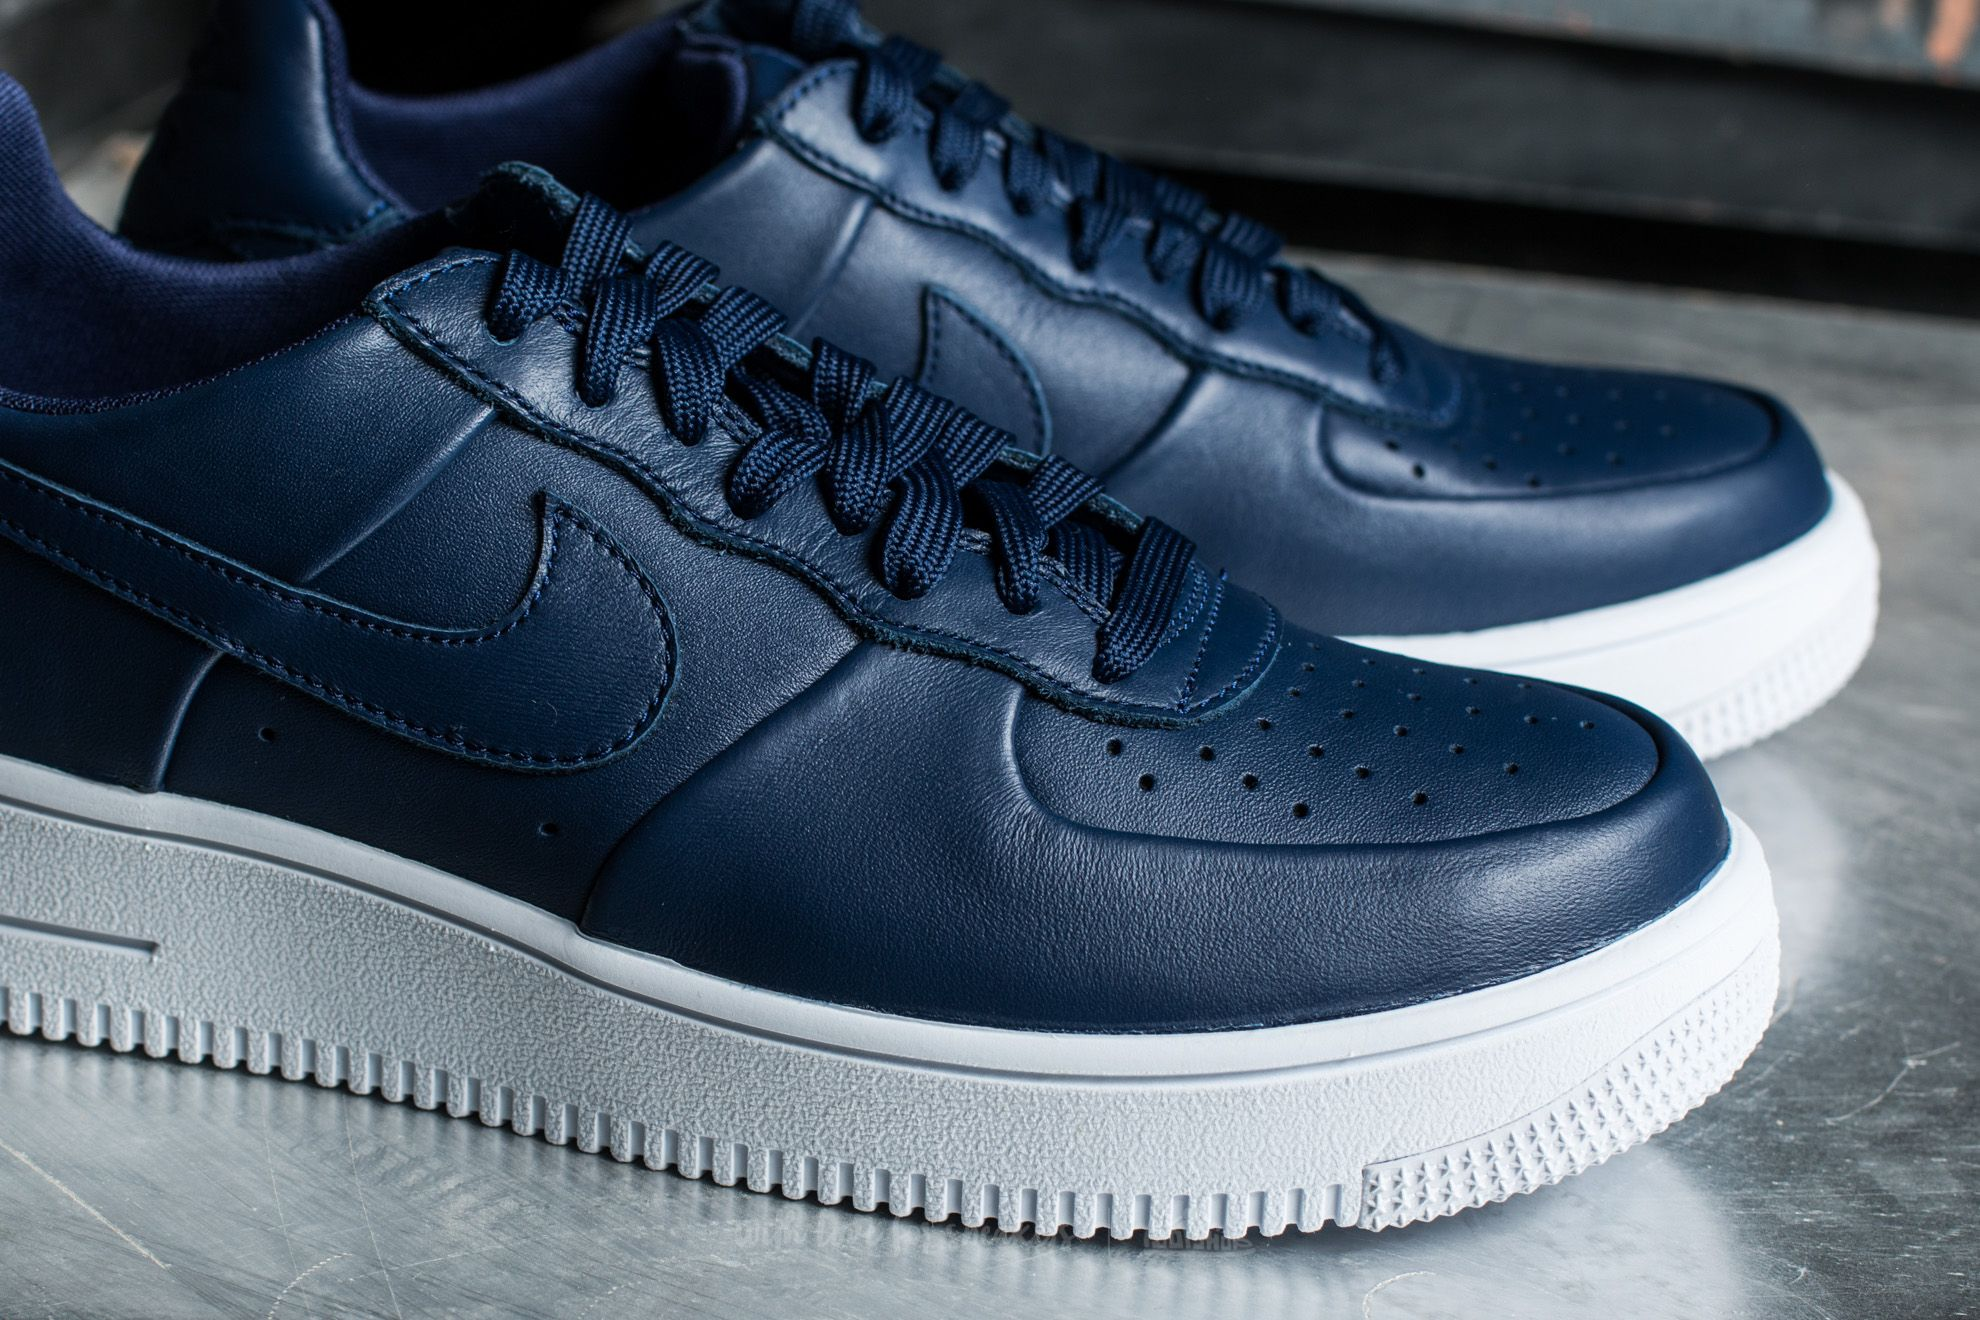 Nike Air Force 1 Ultraforce Leather Uomo, Binary Blue White